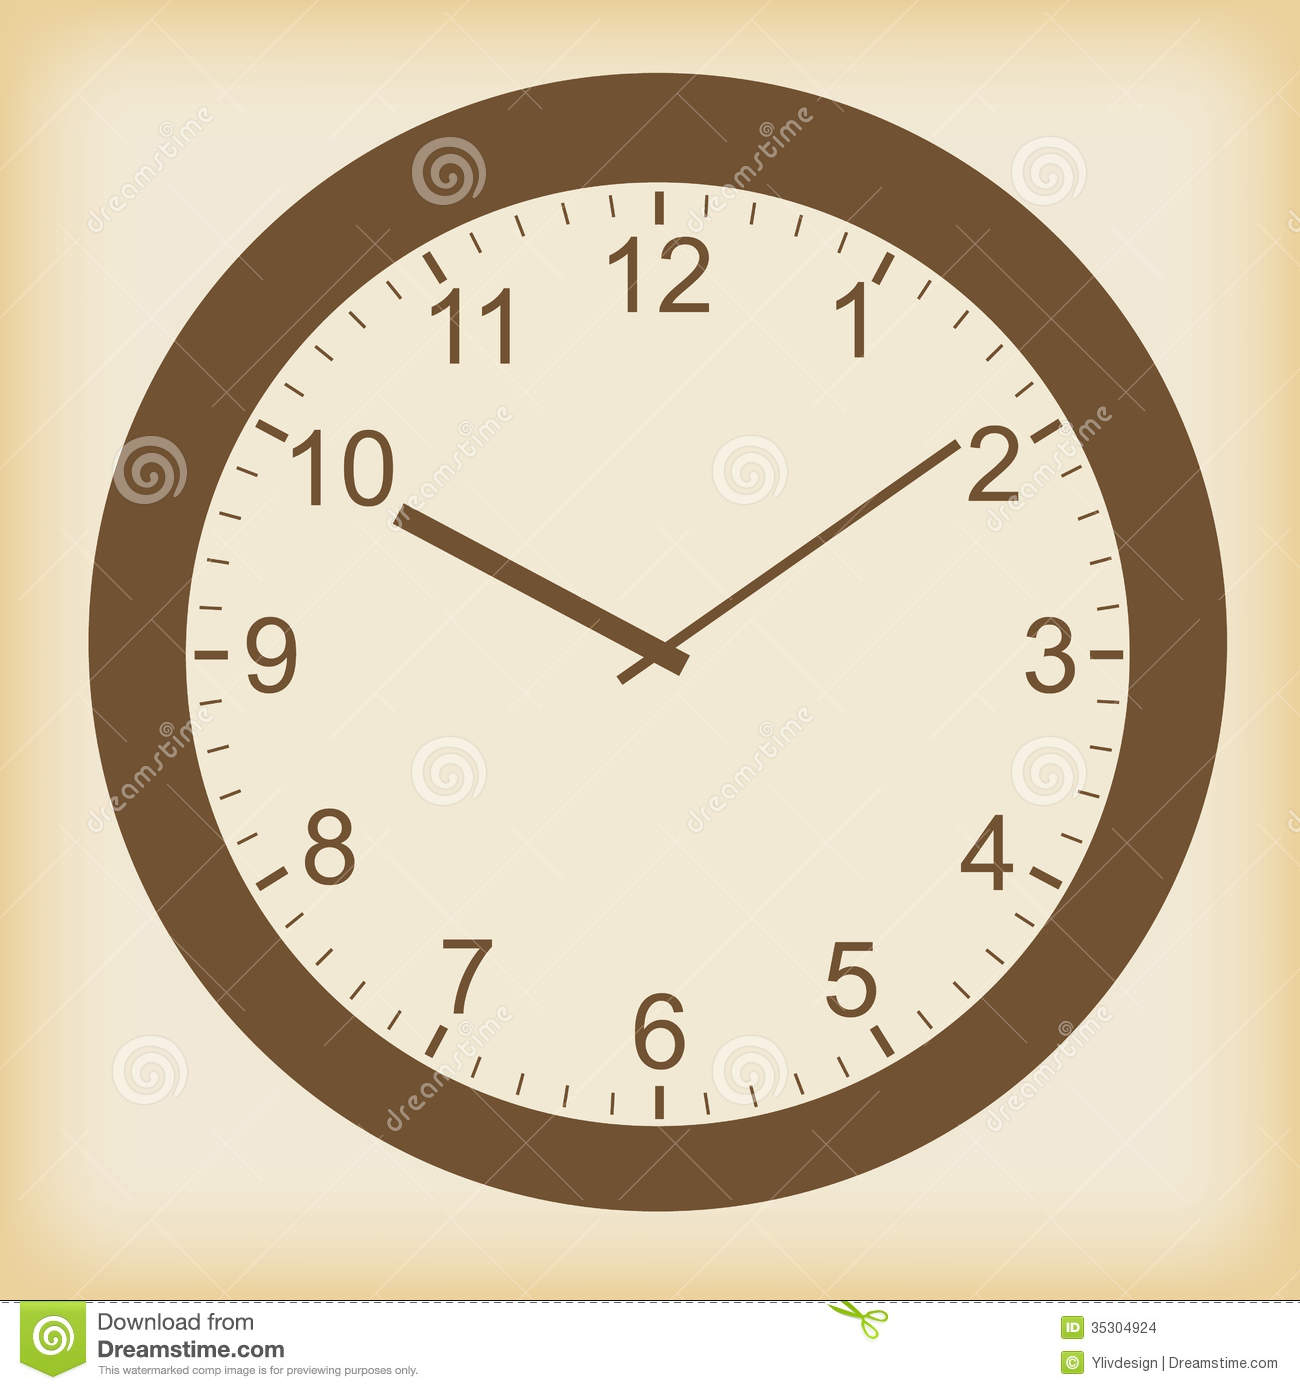 17 Time Icon Vector Images